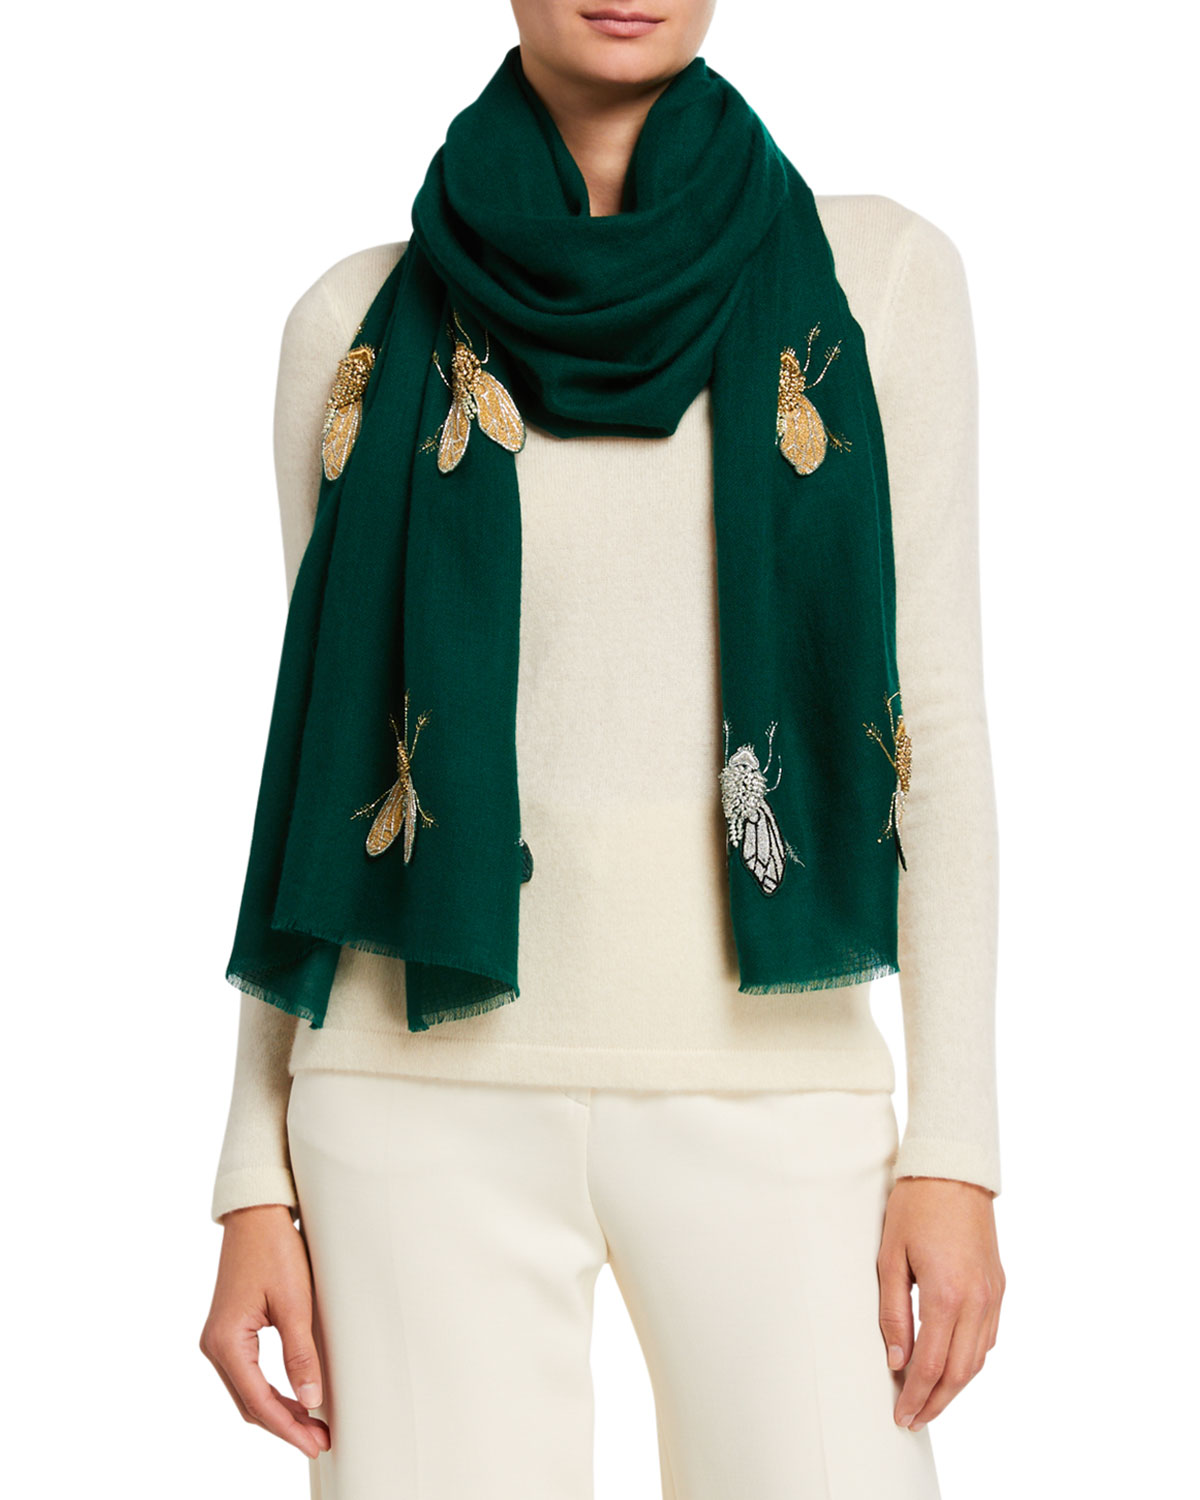 K Janavi Beaded Flies Cashmere Scarf In Emerald